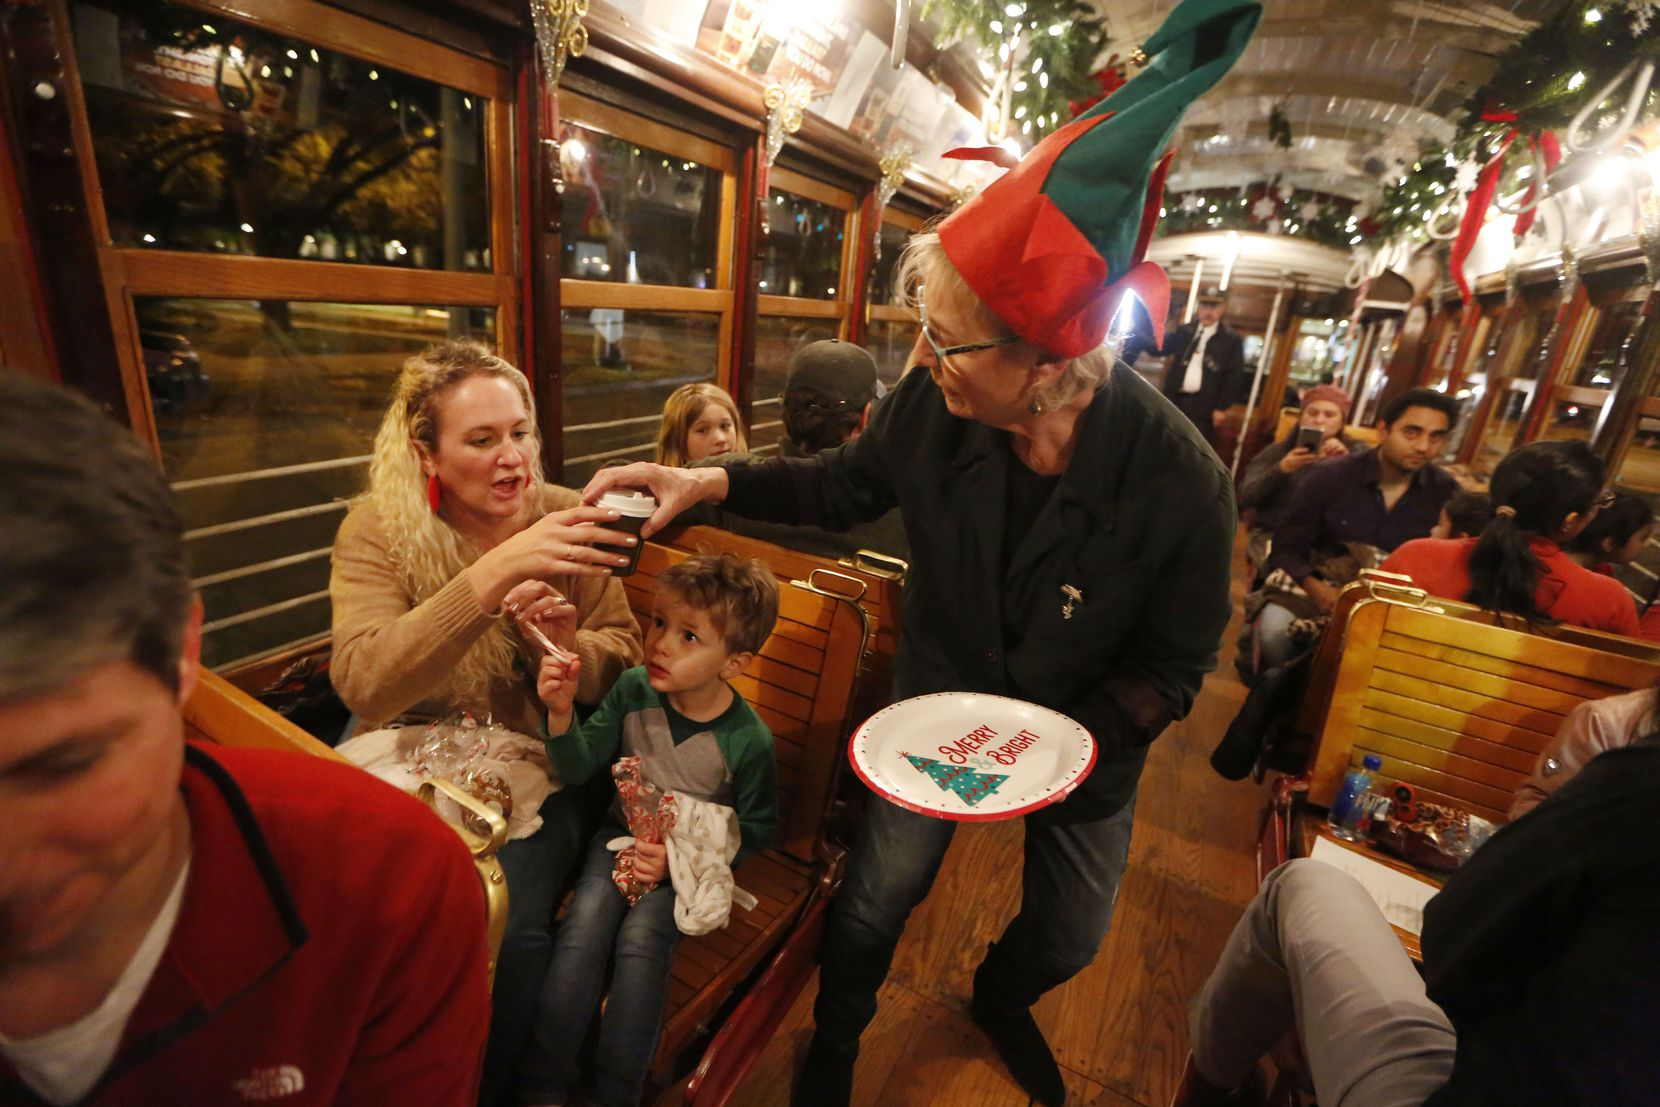 During the M-Line Trolley Holiday Express, view lights and decorations from the trolley while enjoying treats onboard.